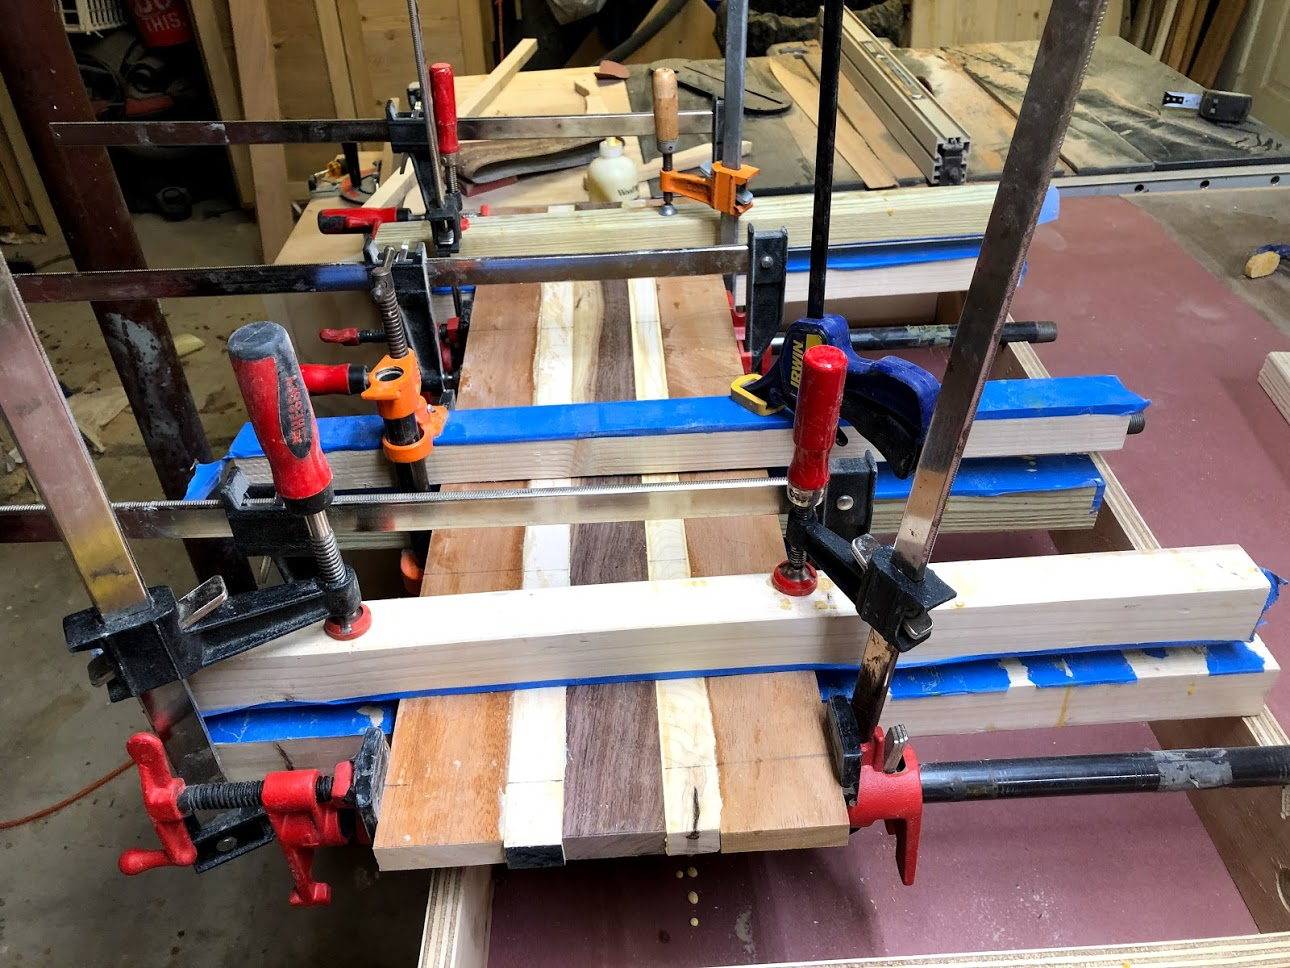 Here you can see the pipe clamps and the clamping cauls in my attempt at keeping the panel flat during the glue up.